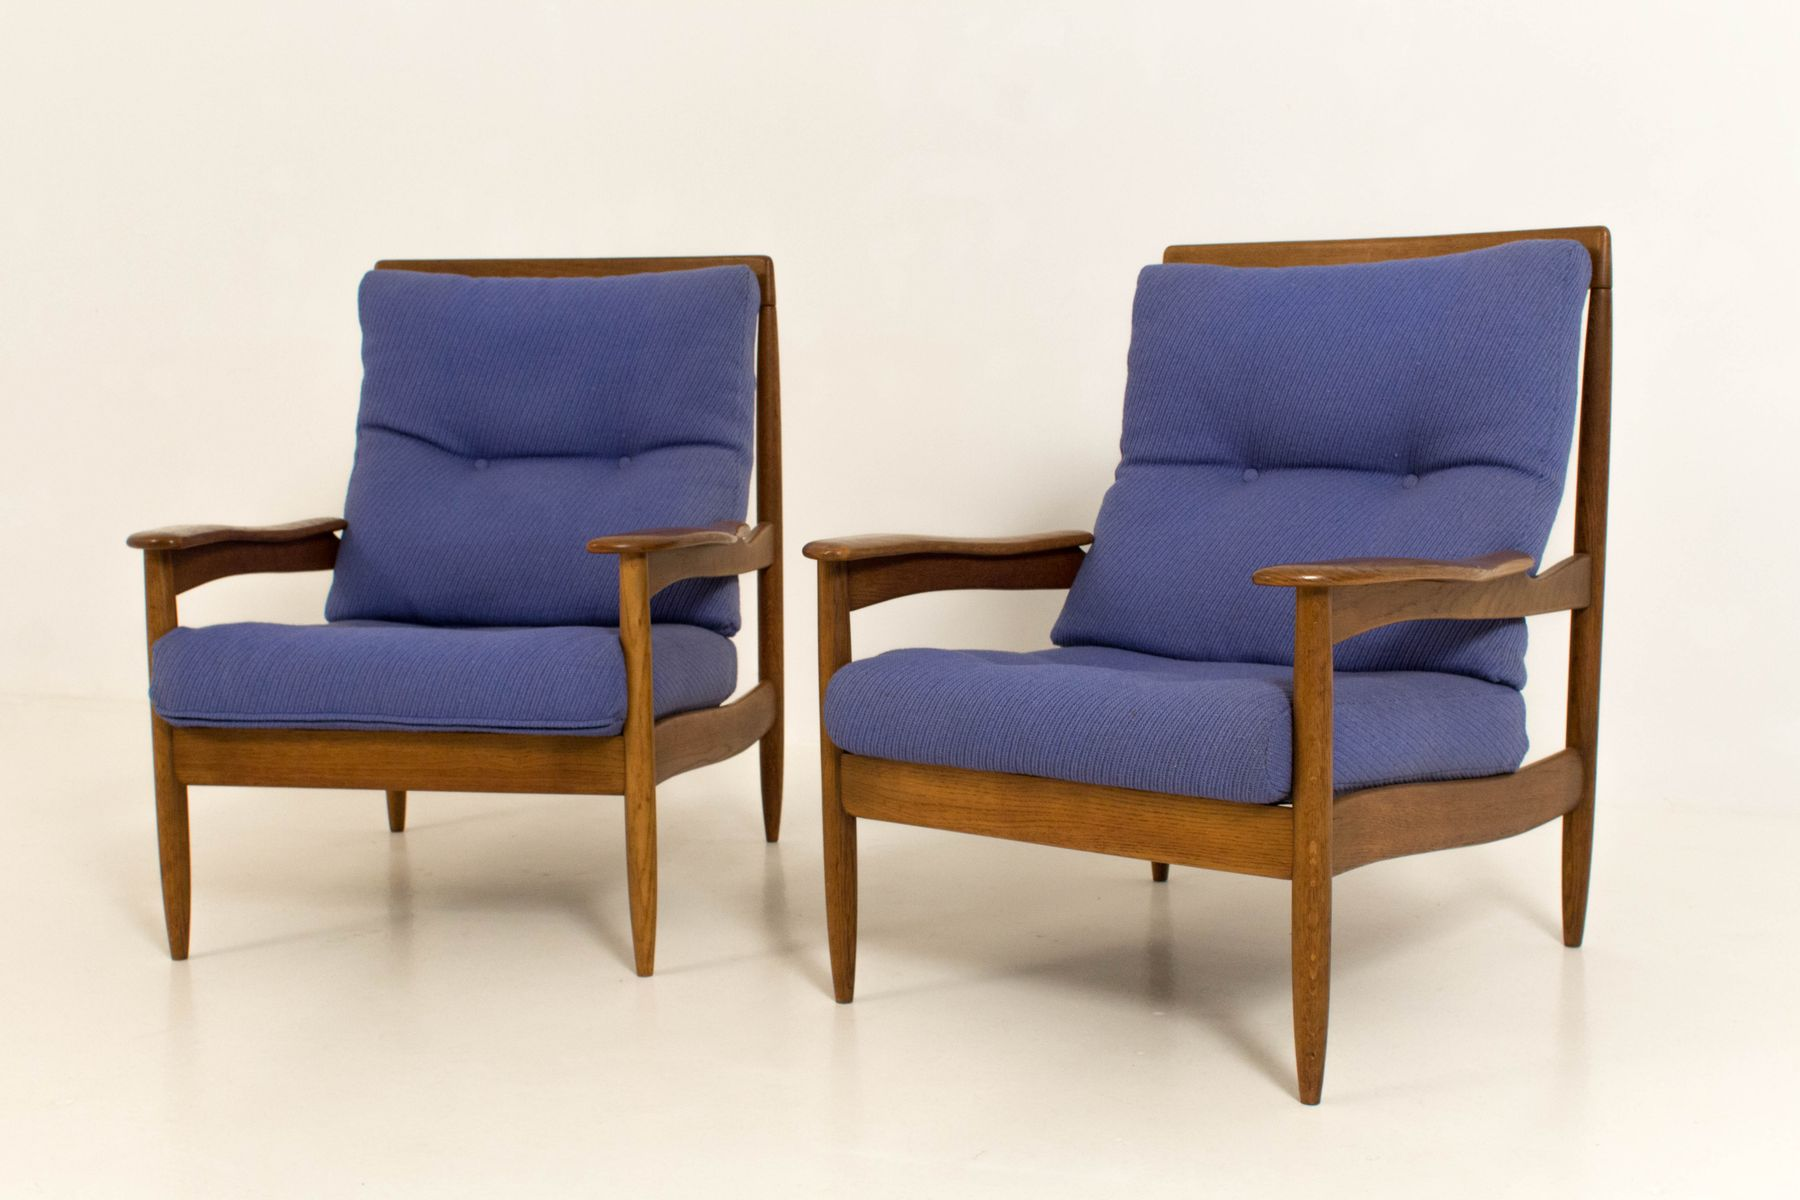 Mid century modern danish lounge chairs 1960s set of 2 for Mid century danish modern chair